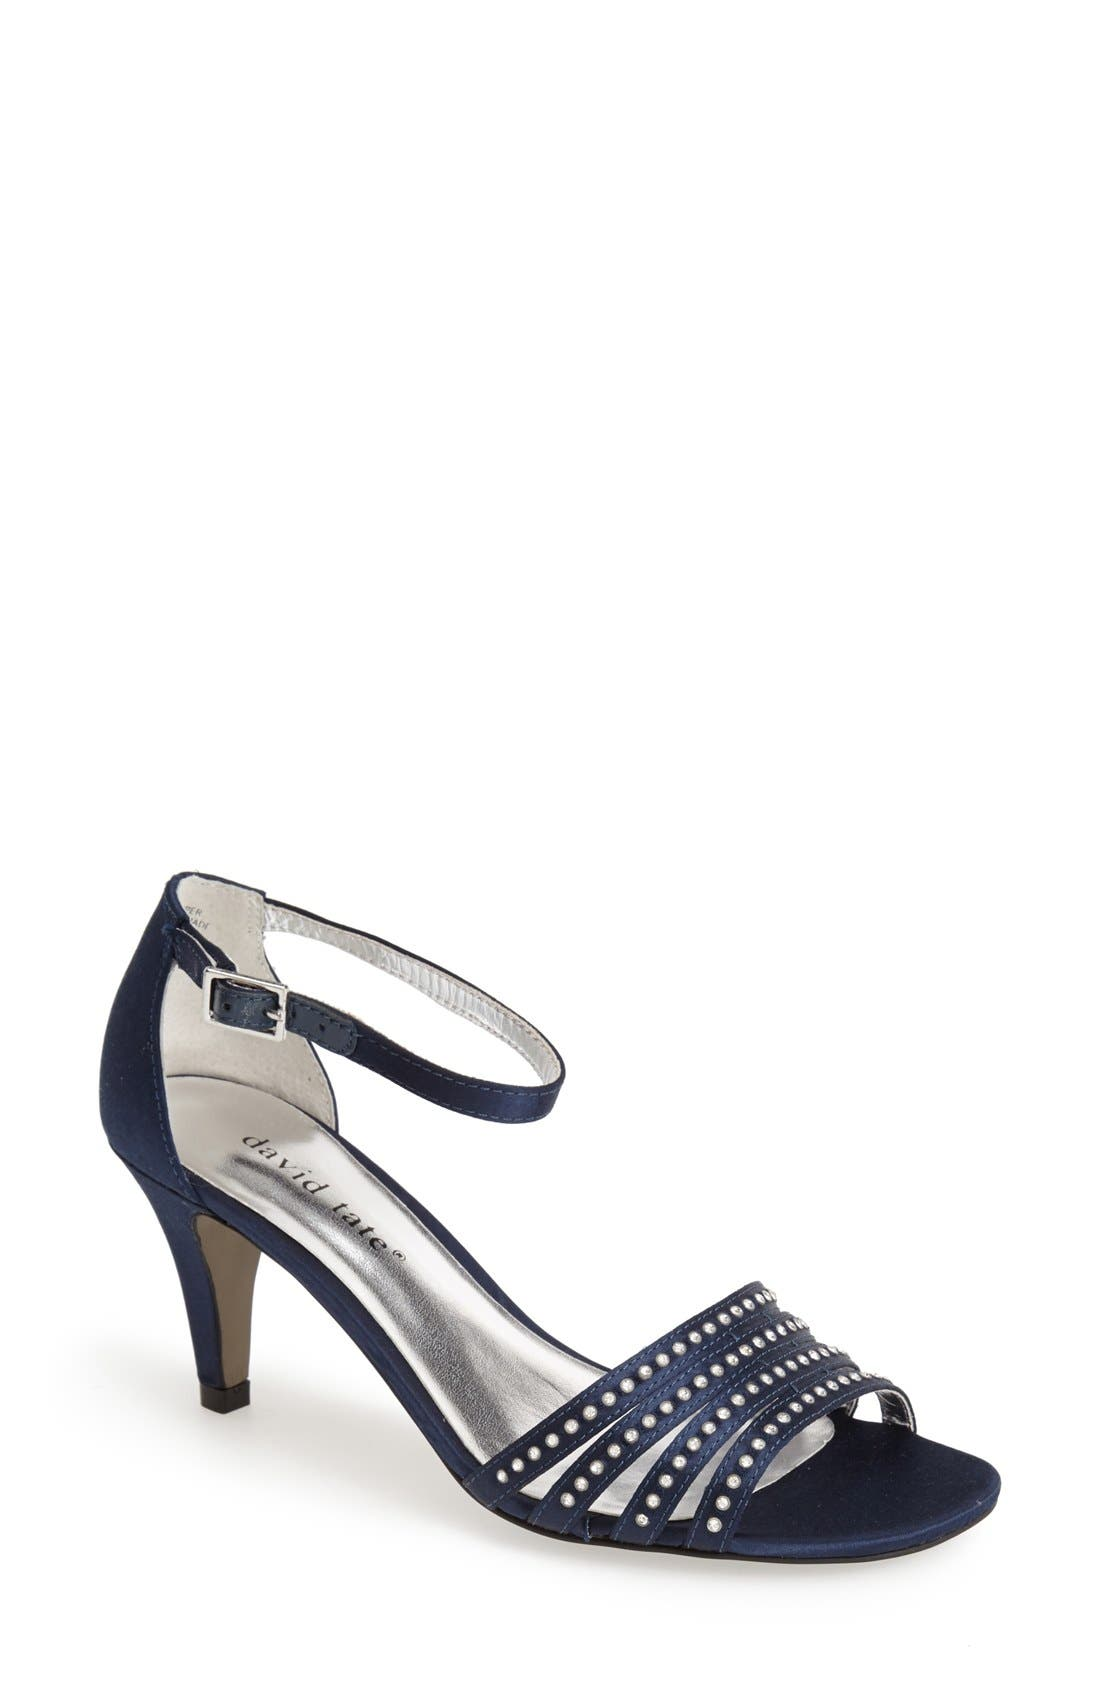 'Terra' Ankle Strap Sandal,                             Main thumbnail 1, color,                             Navy Satin